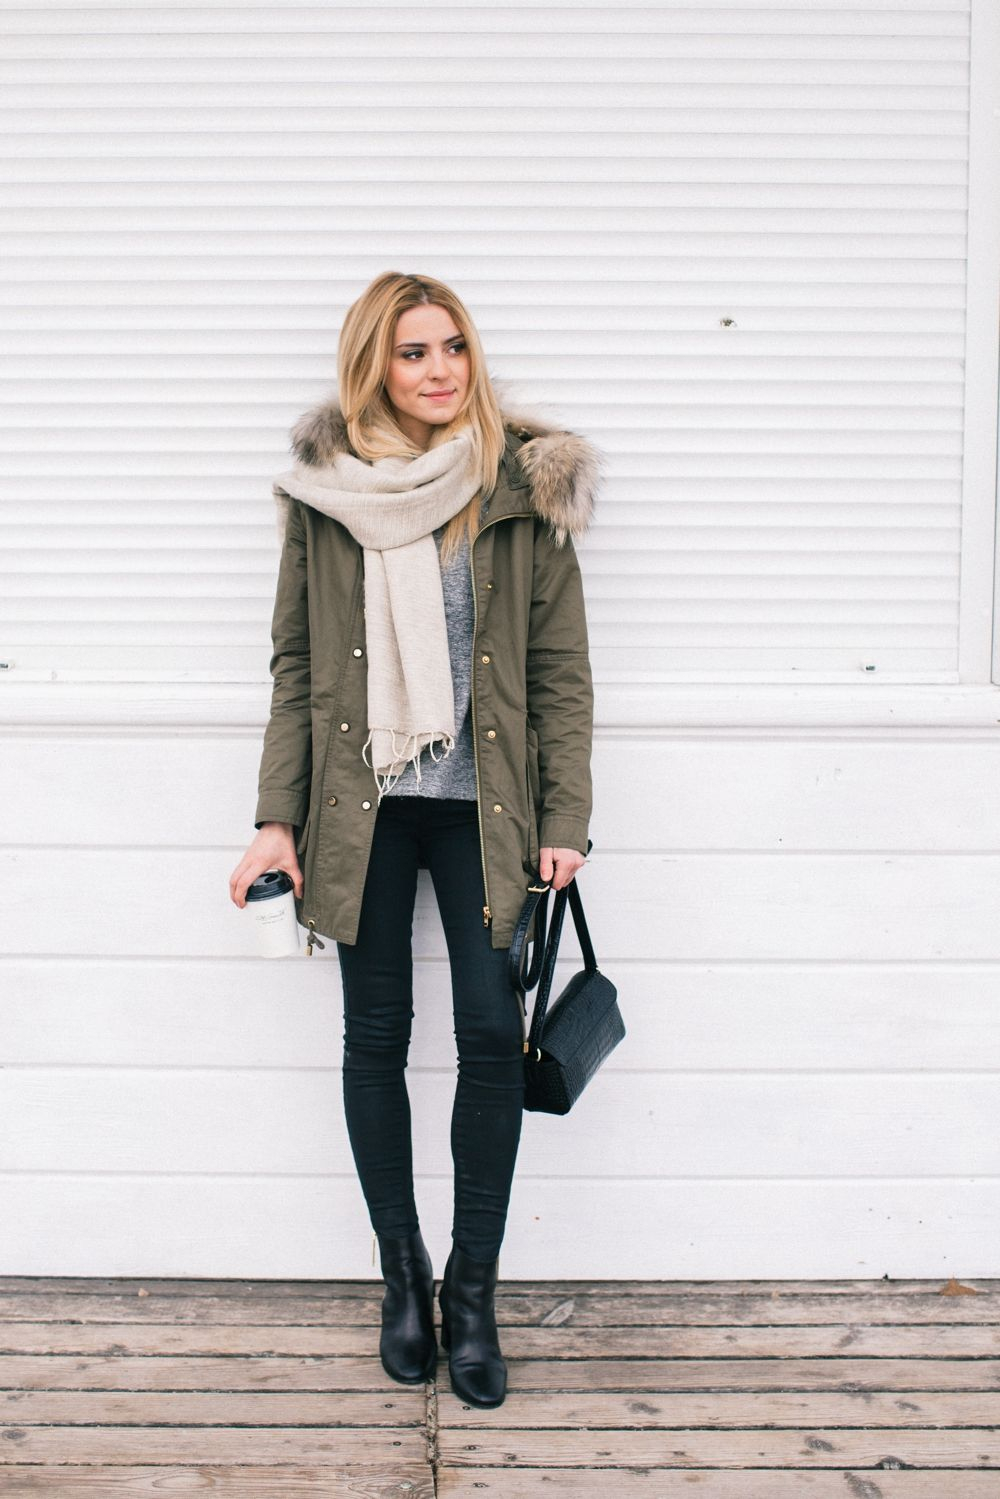 Winter style idea. Parka jacket, grey sweater, black jeans